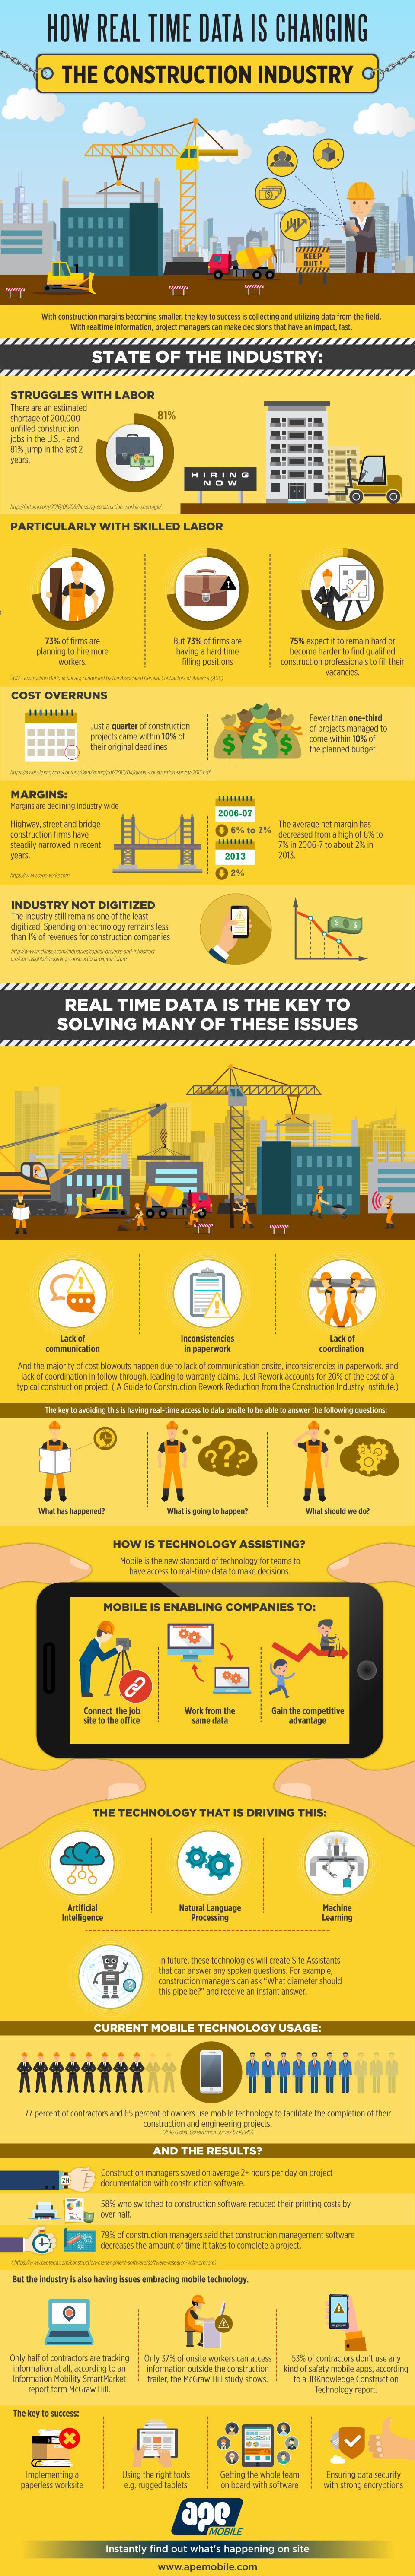 Infographic - Real Time Data Changing Construction Industry.jpg